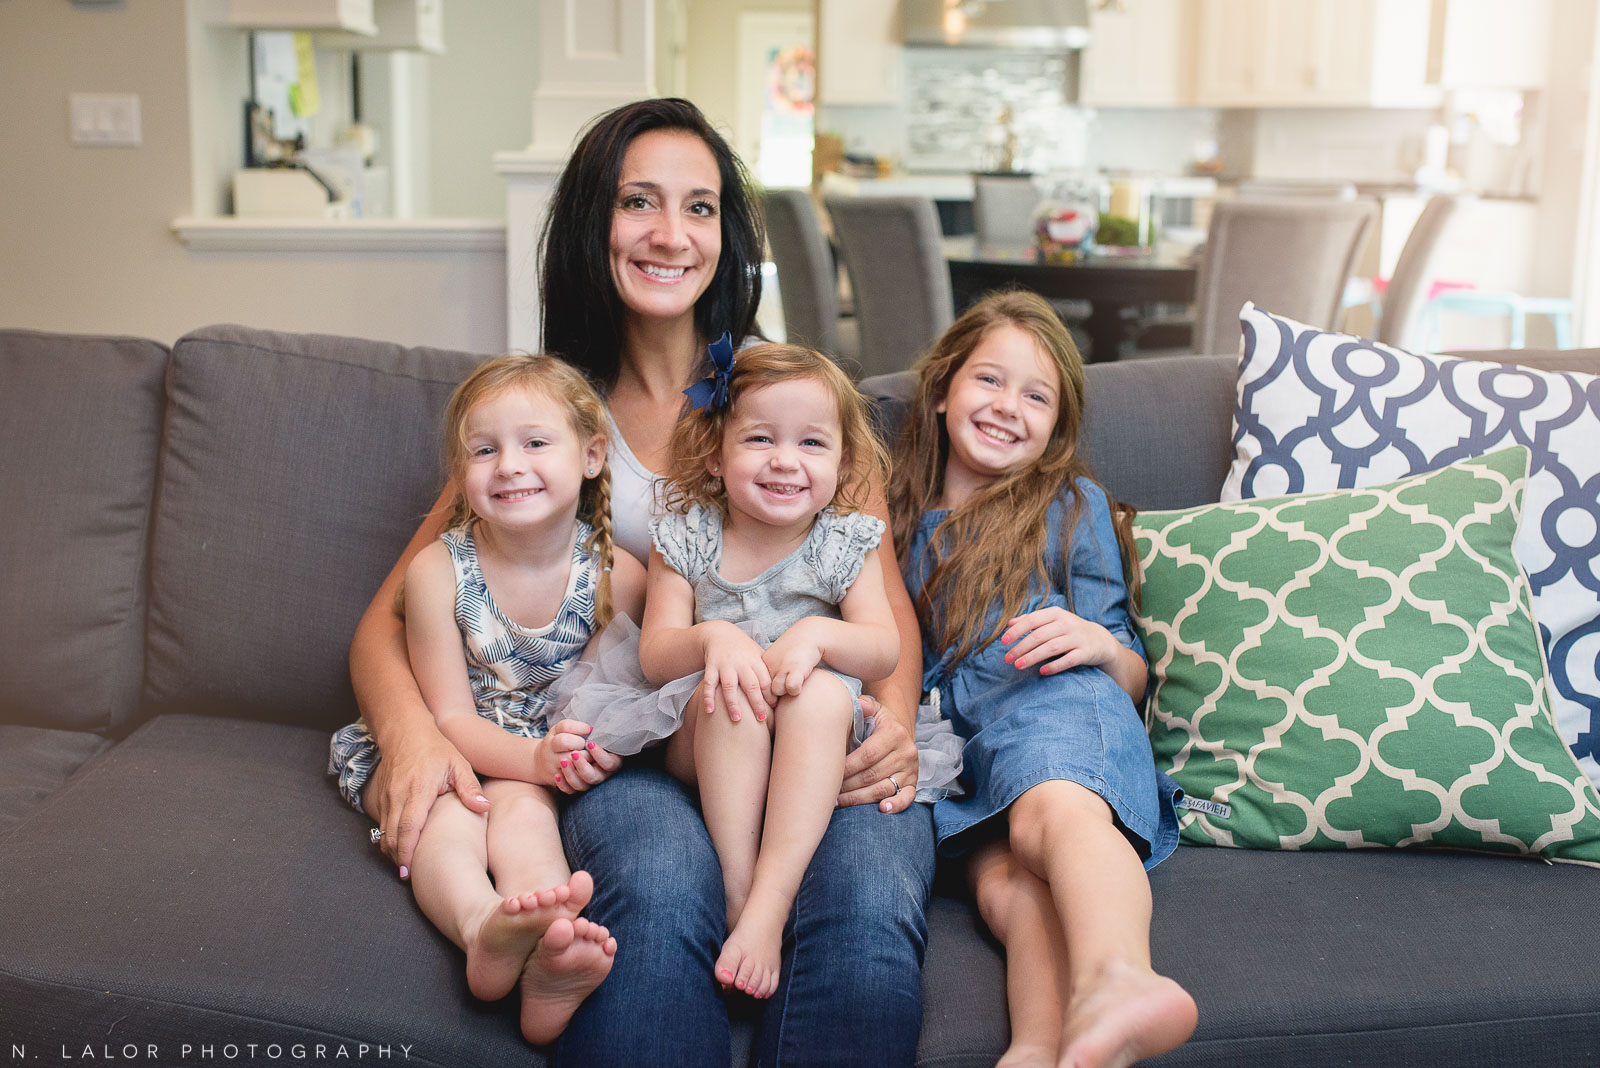 Mom with her three daughters, snuggling on the couch. Lifestyle portrait by N. Lalor Photography.